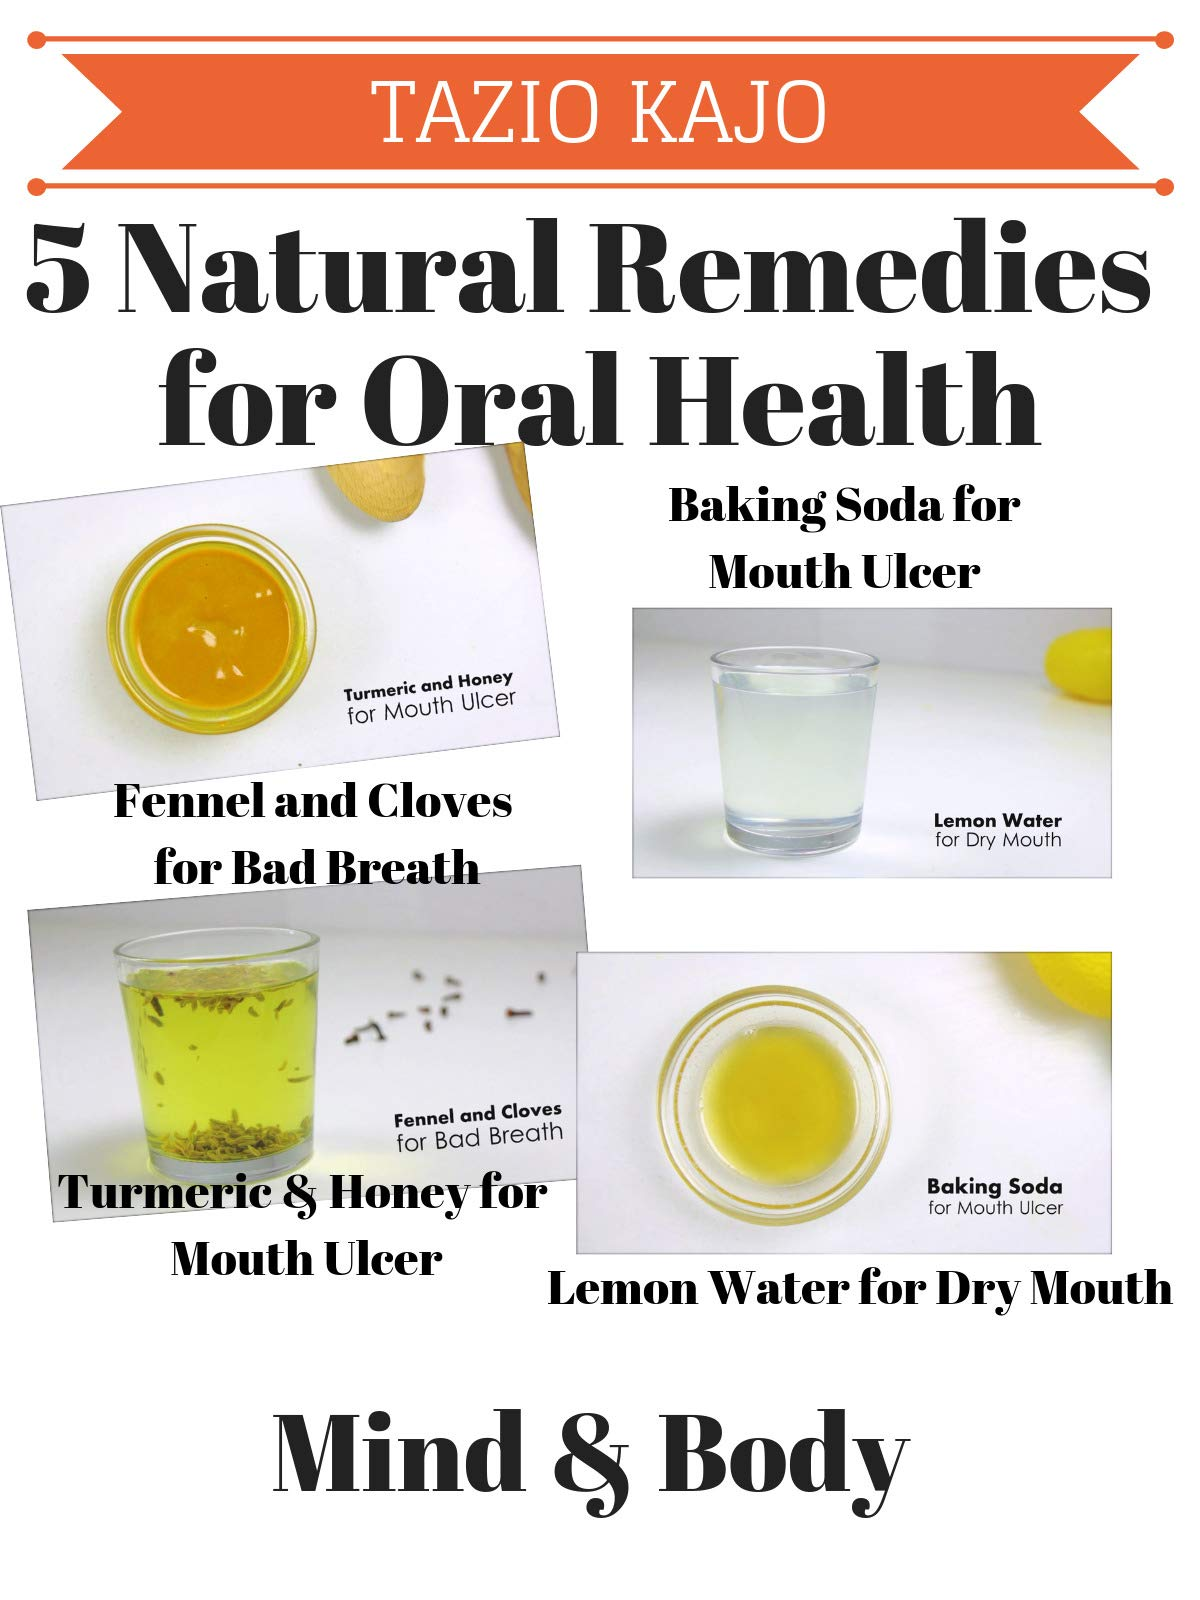 5 Natural Remedies for Oral Health